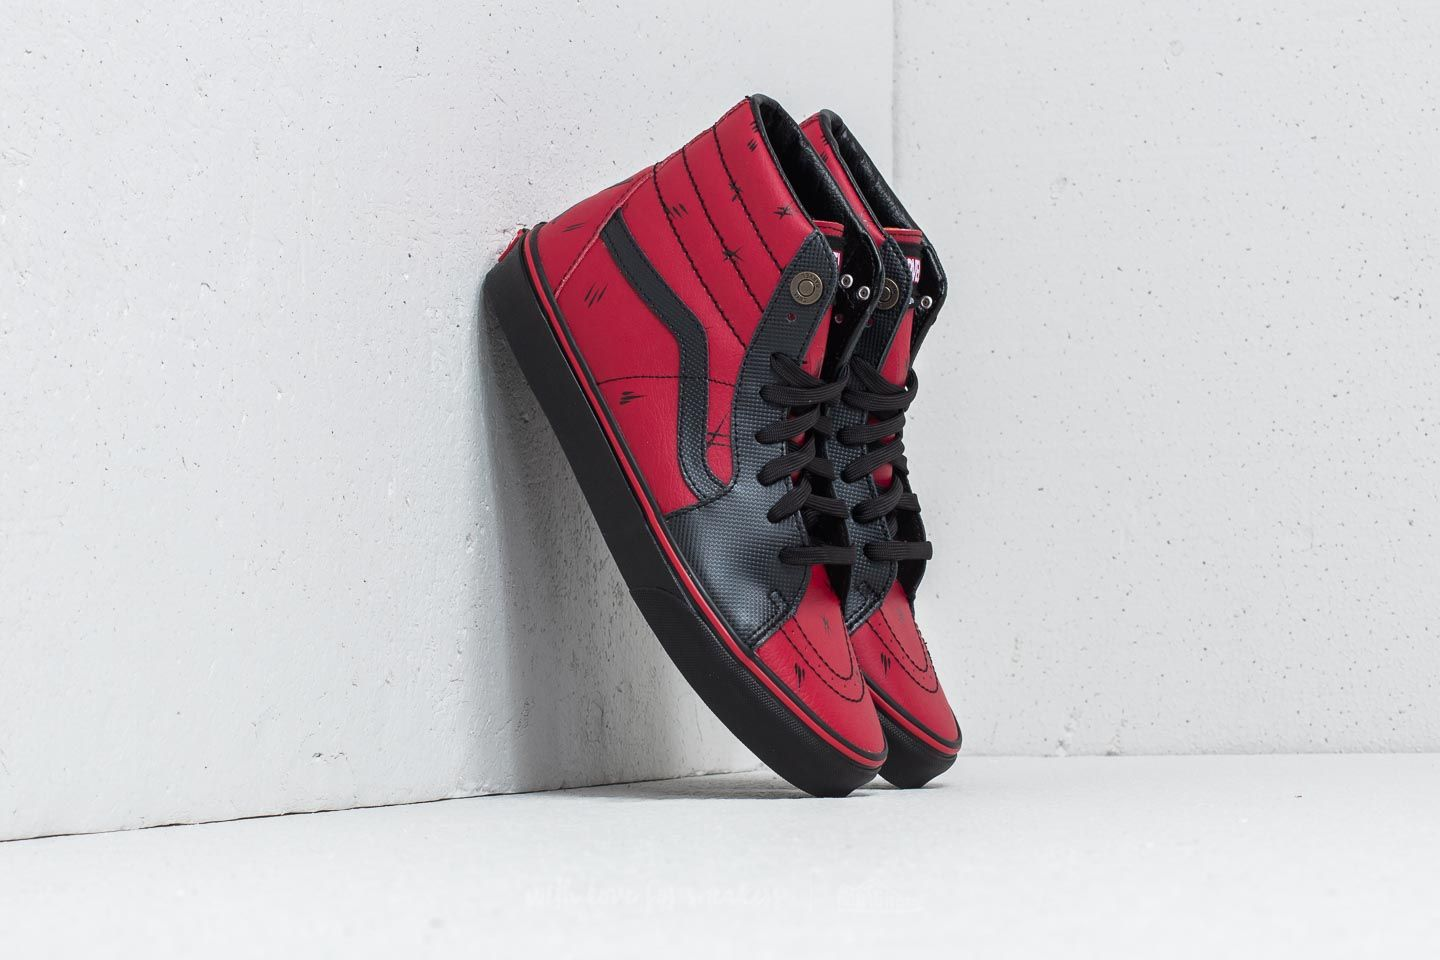 752c3fd9a885 Vans Sk8-Hi (Marvel) Deadpool  Black